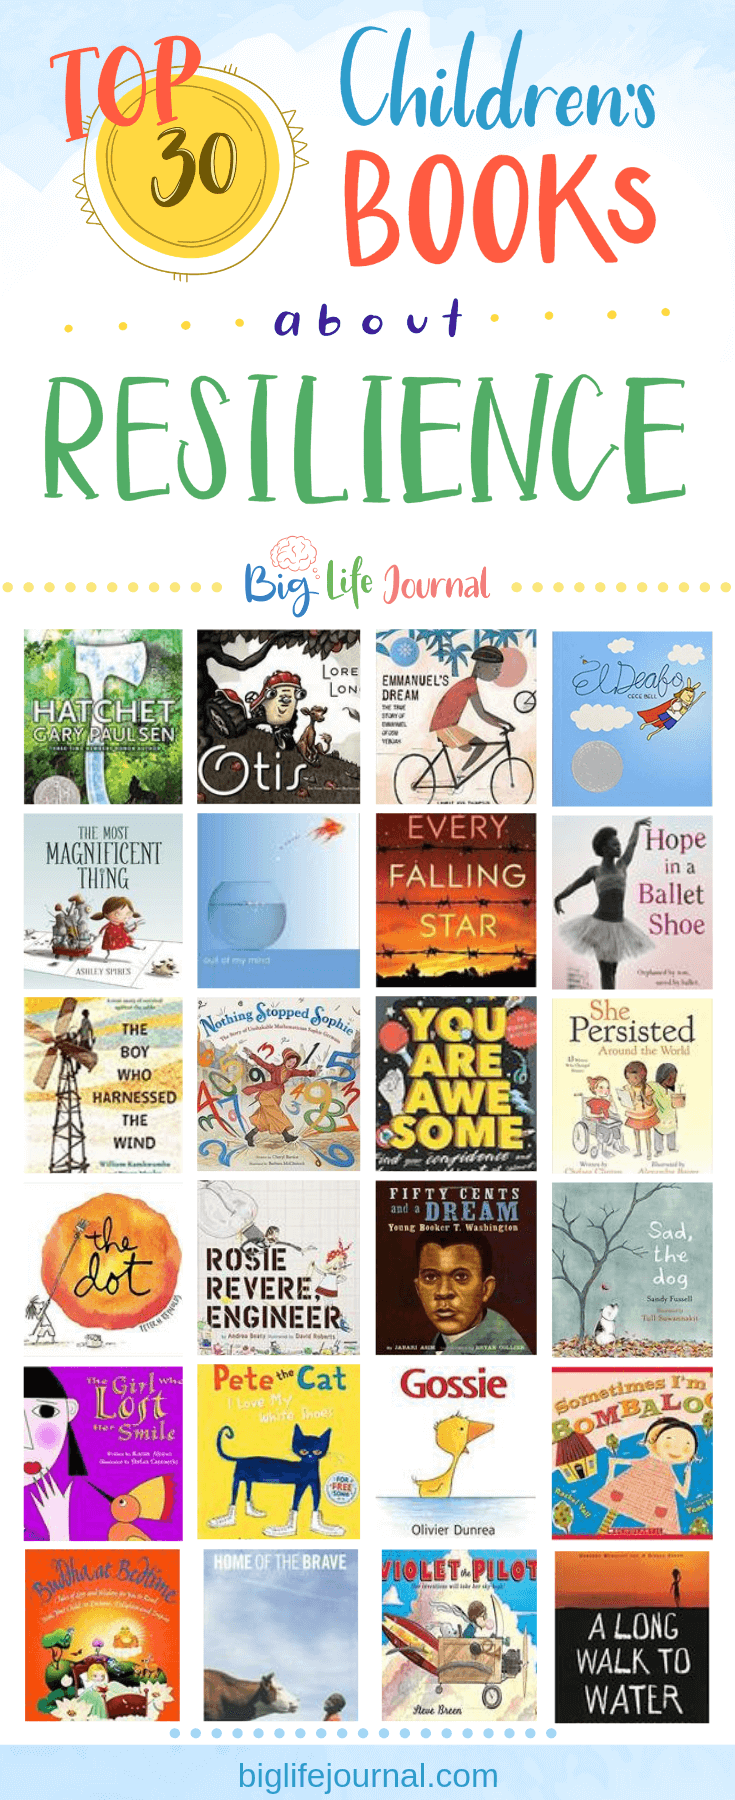 Top 30 Children's Books About Resilience